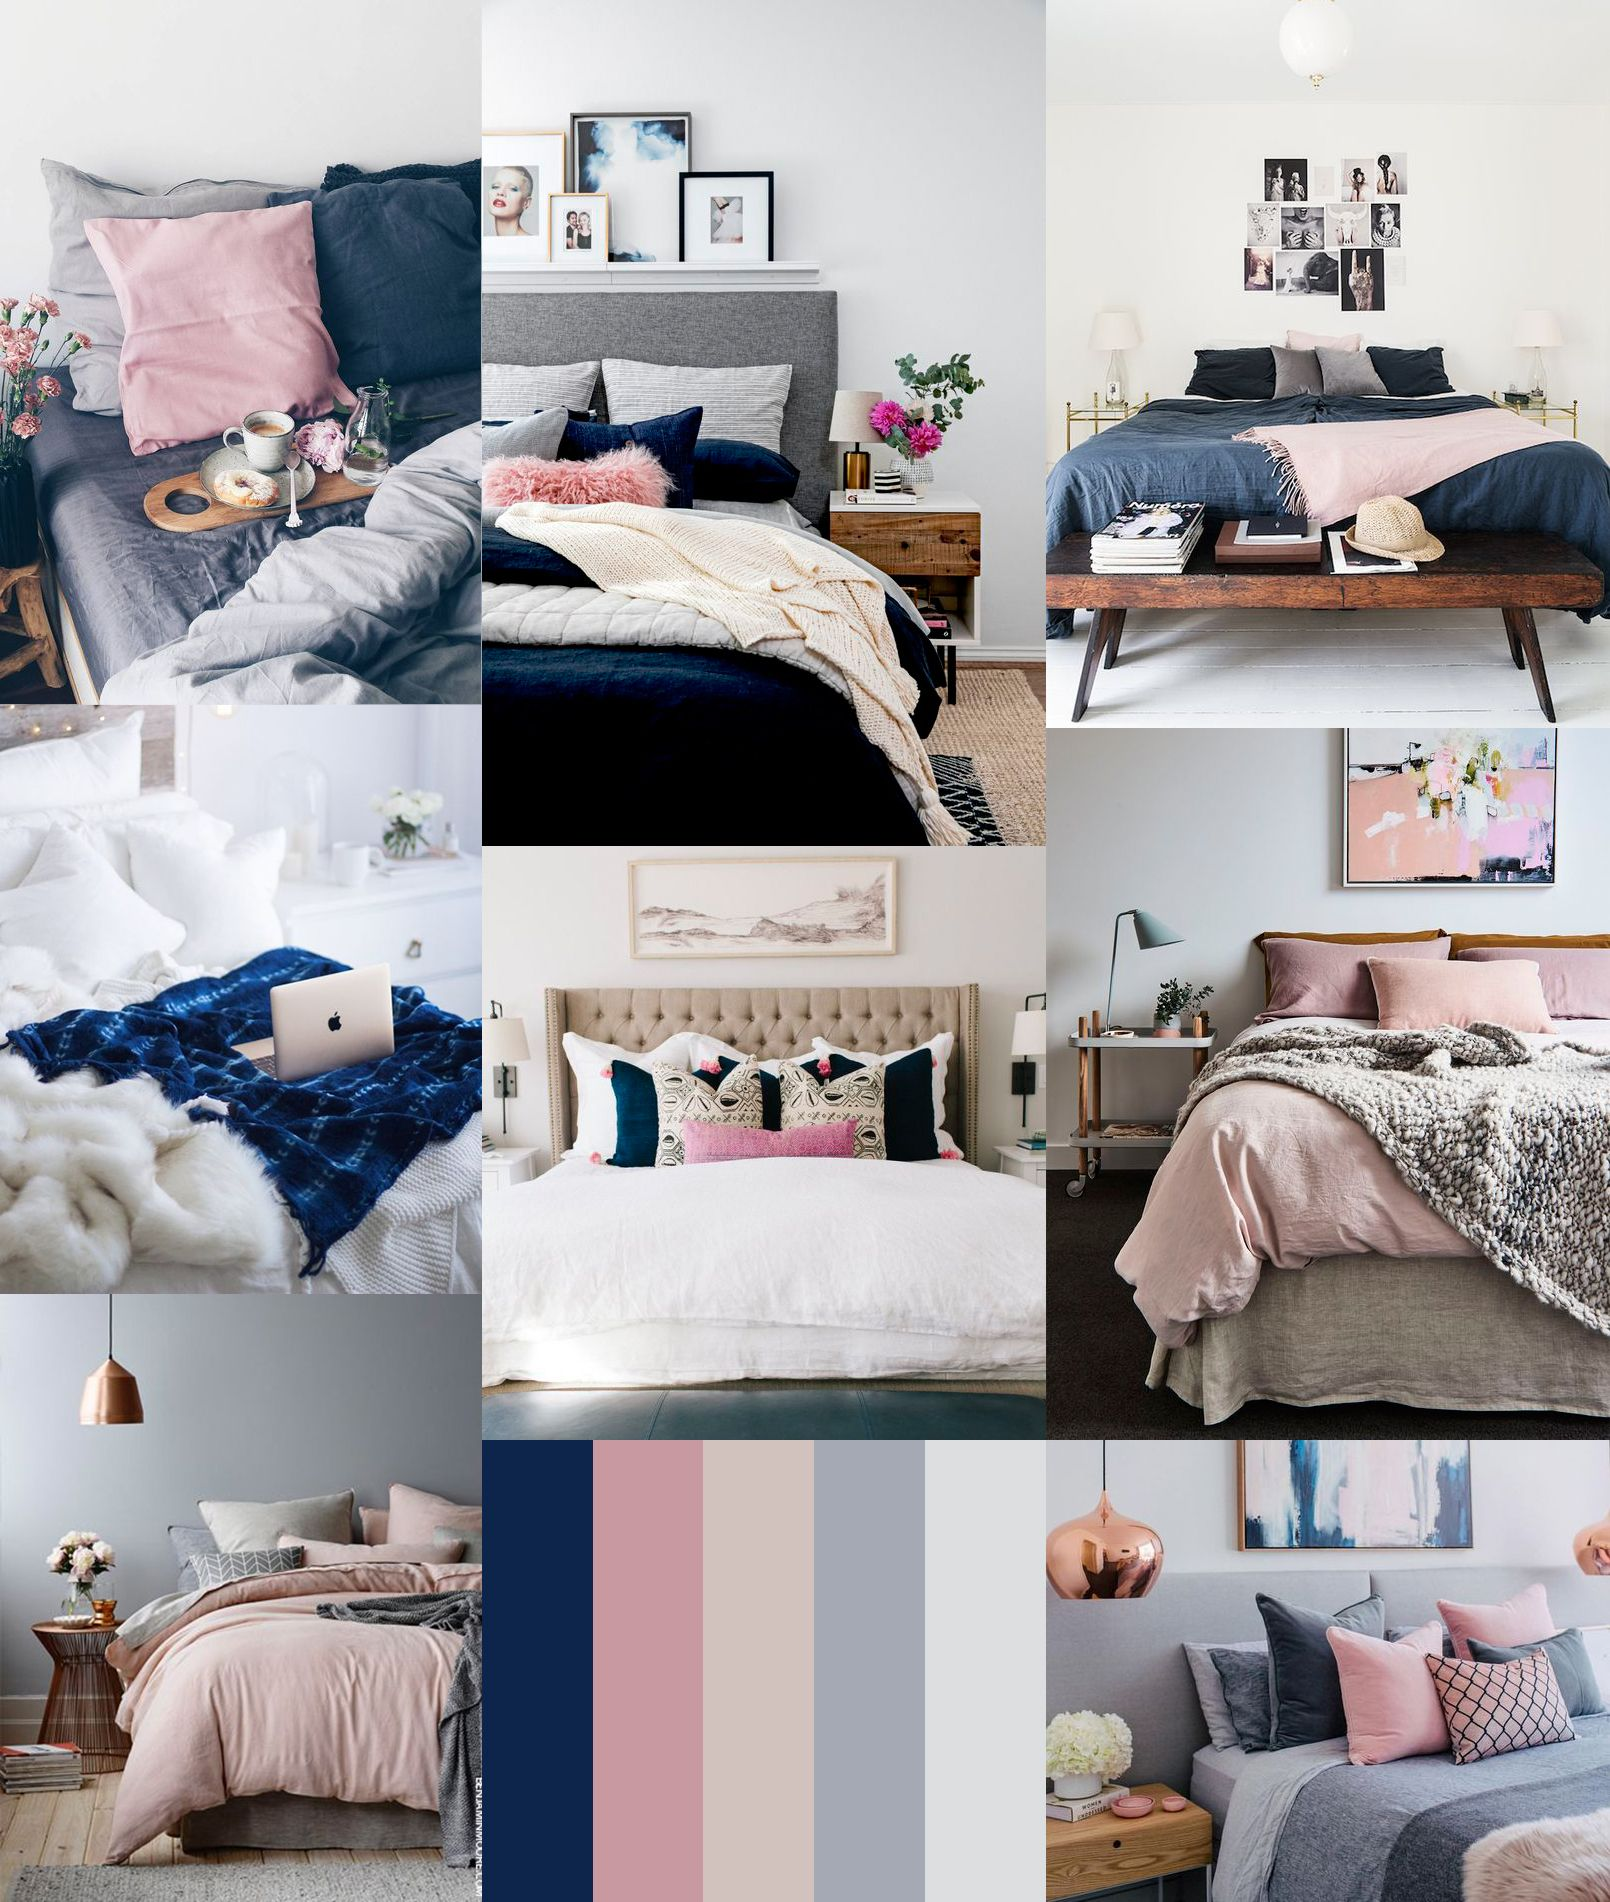 3 Indigo Denim Navy Slate Blue Gray Blush Brown Dorm Room